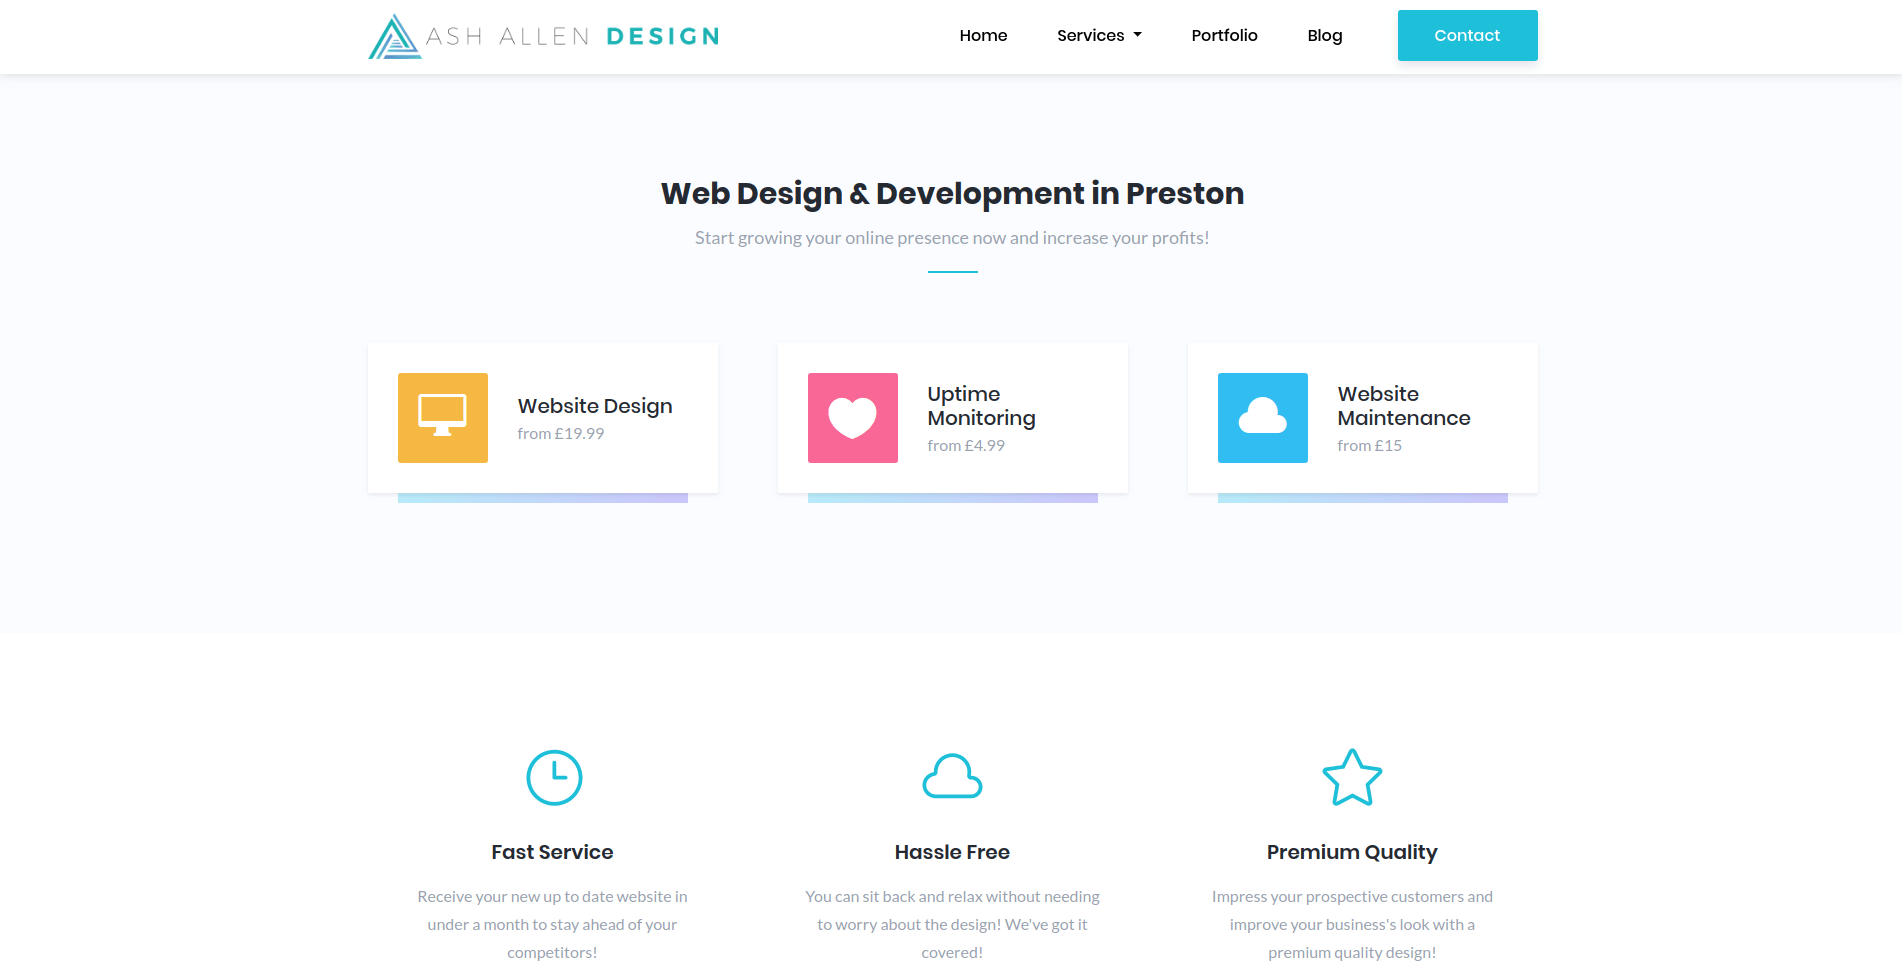 Ash Allen Design Website Design SEO CTA